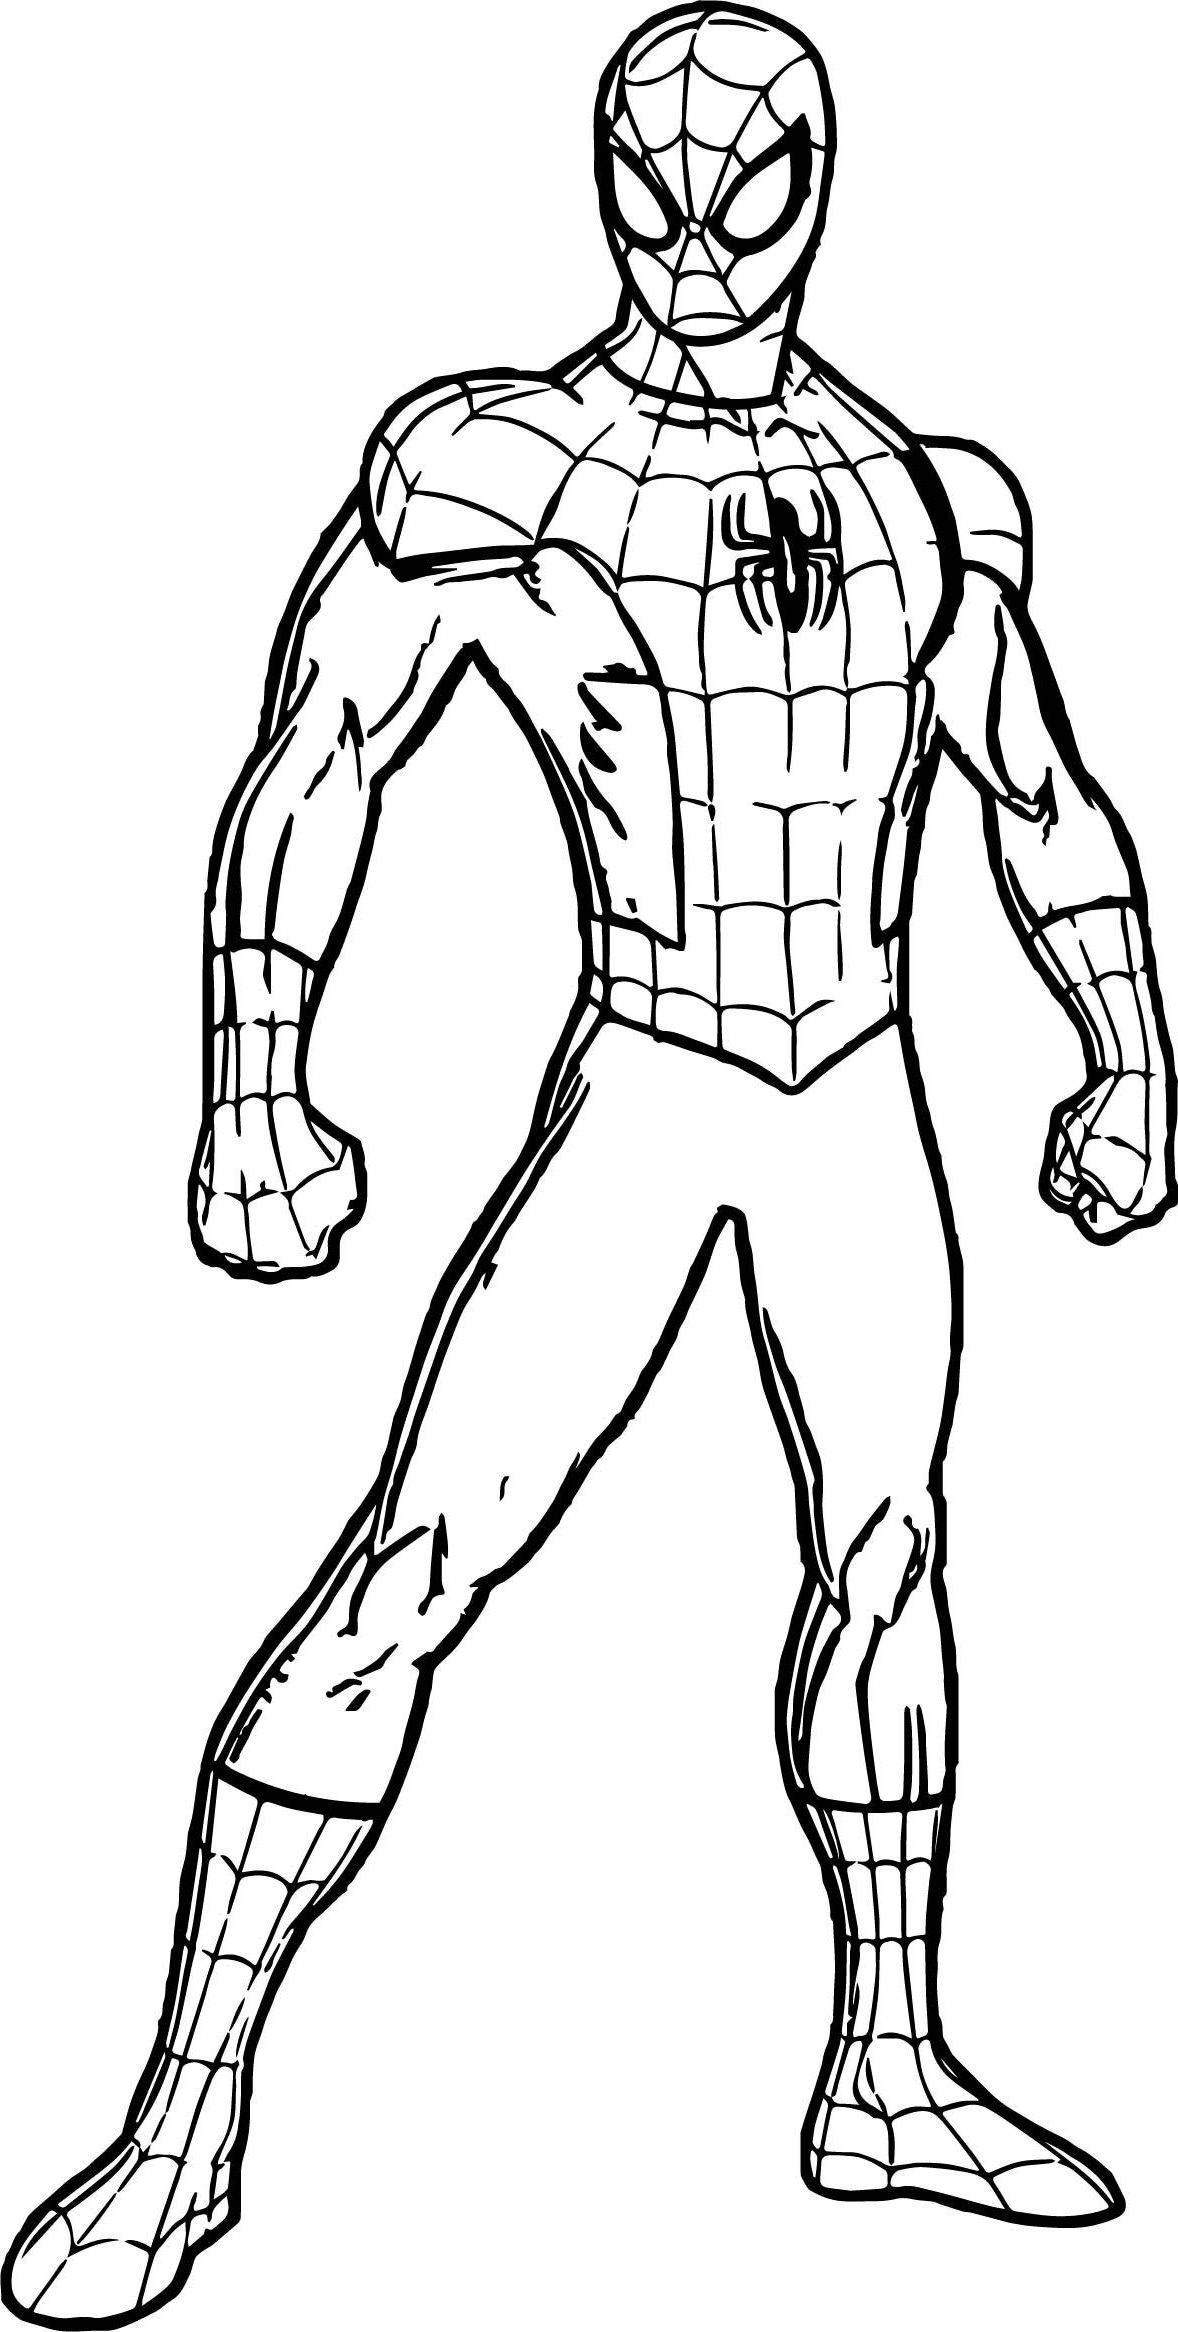 spiderman outline spiderman outline drawing at getdrawings free download spiderman outline 1 2